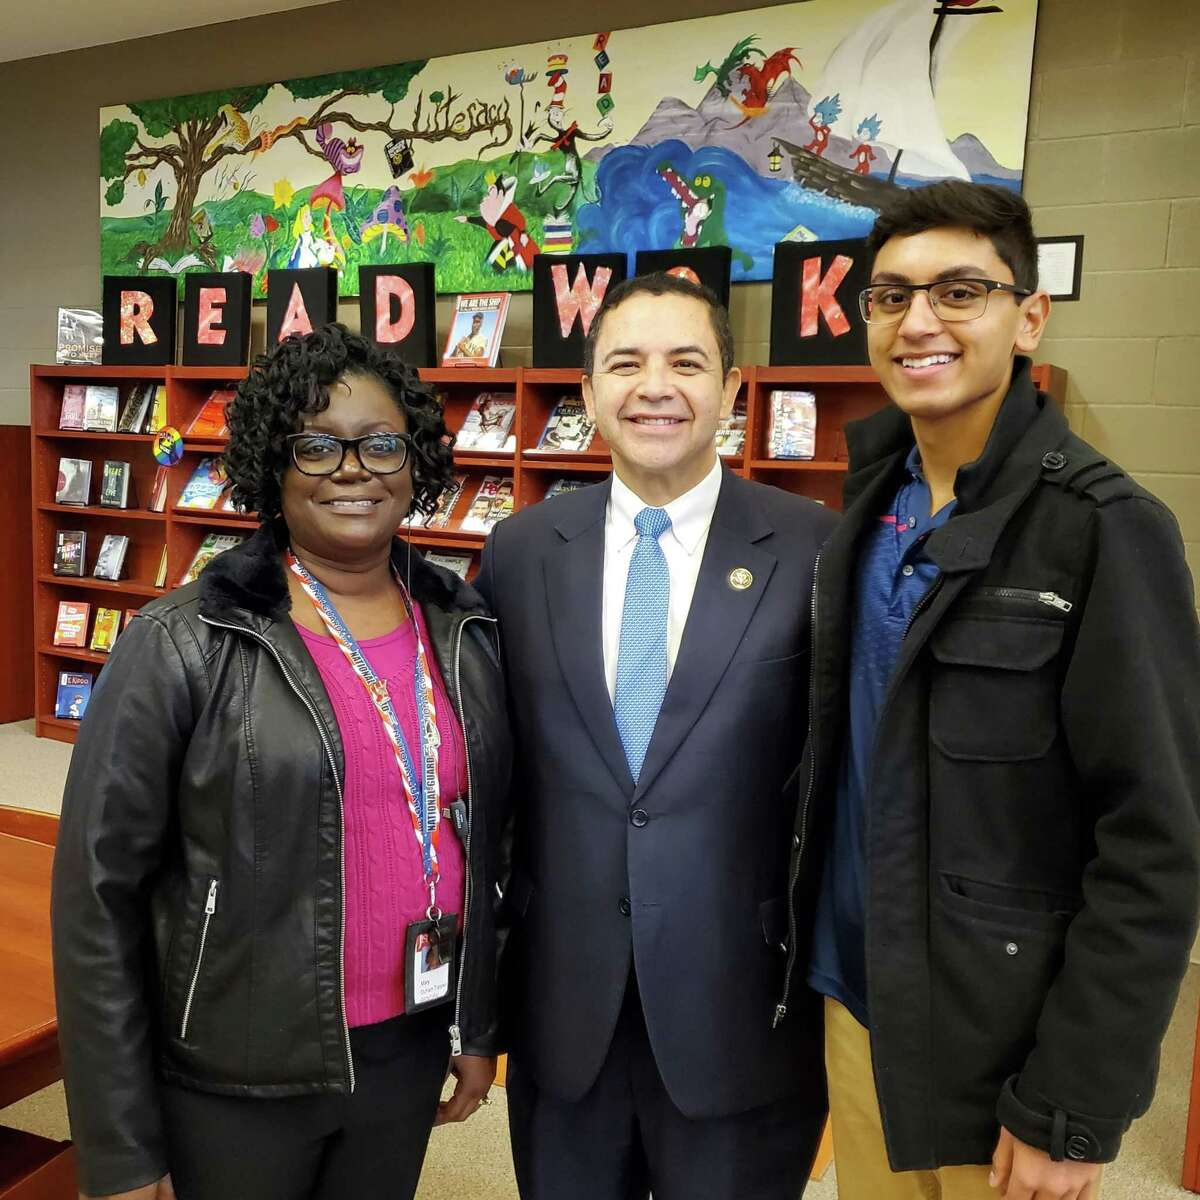 Ian Fernandes, right, a Wagner High School junior, is a 2019 Congressional App Challenge winner, as awarded Jan. 22 by U.S. Rep. Henry Cuellar (D-Texas) and Wagner Principal Mary Duhart-Toppen, left.